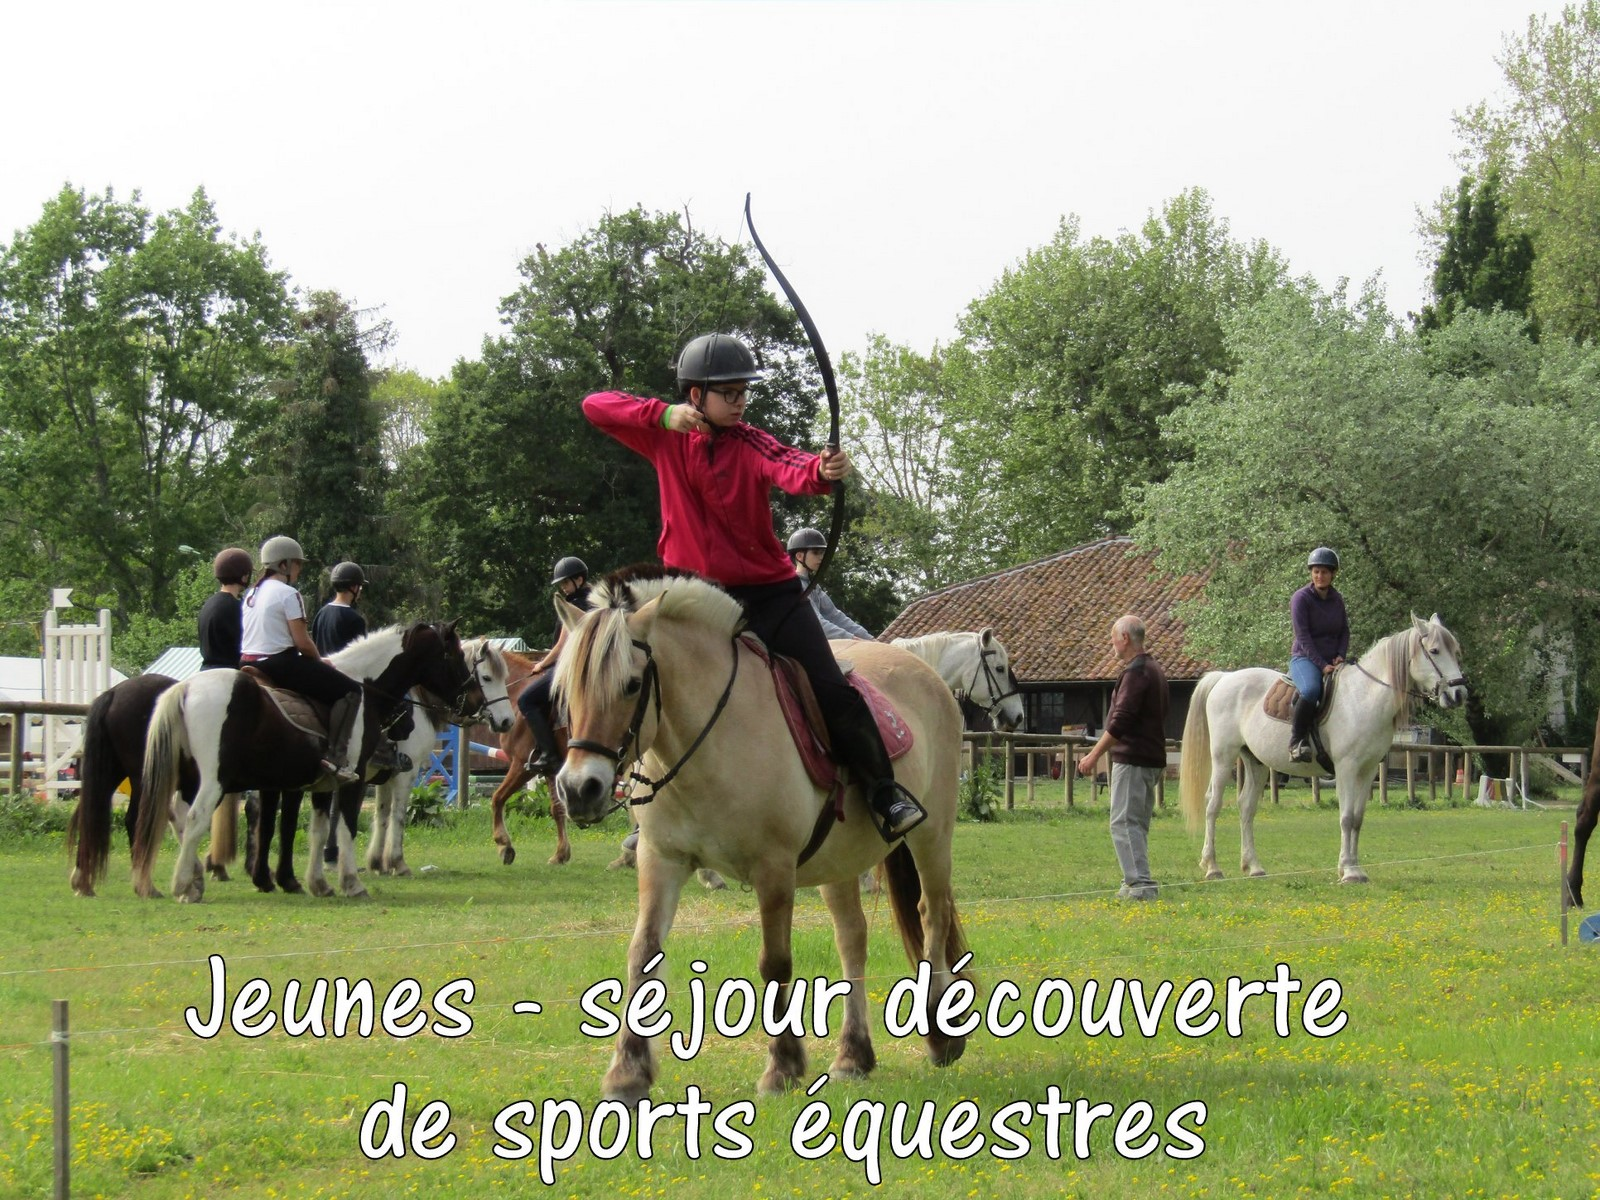 sejour-decouverte-de-sports-equestres